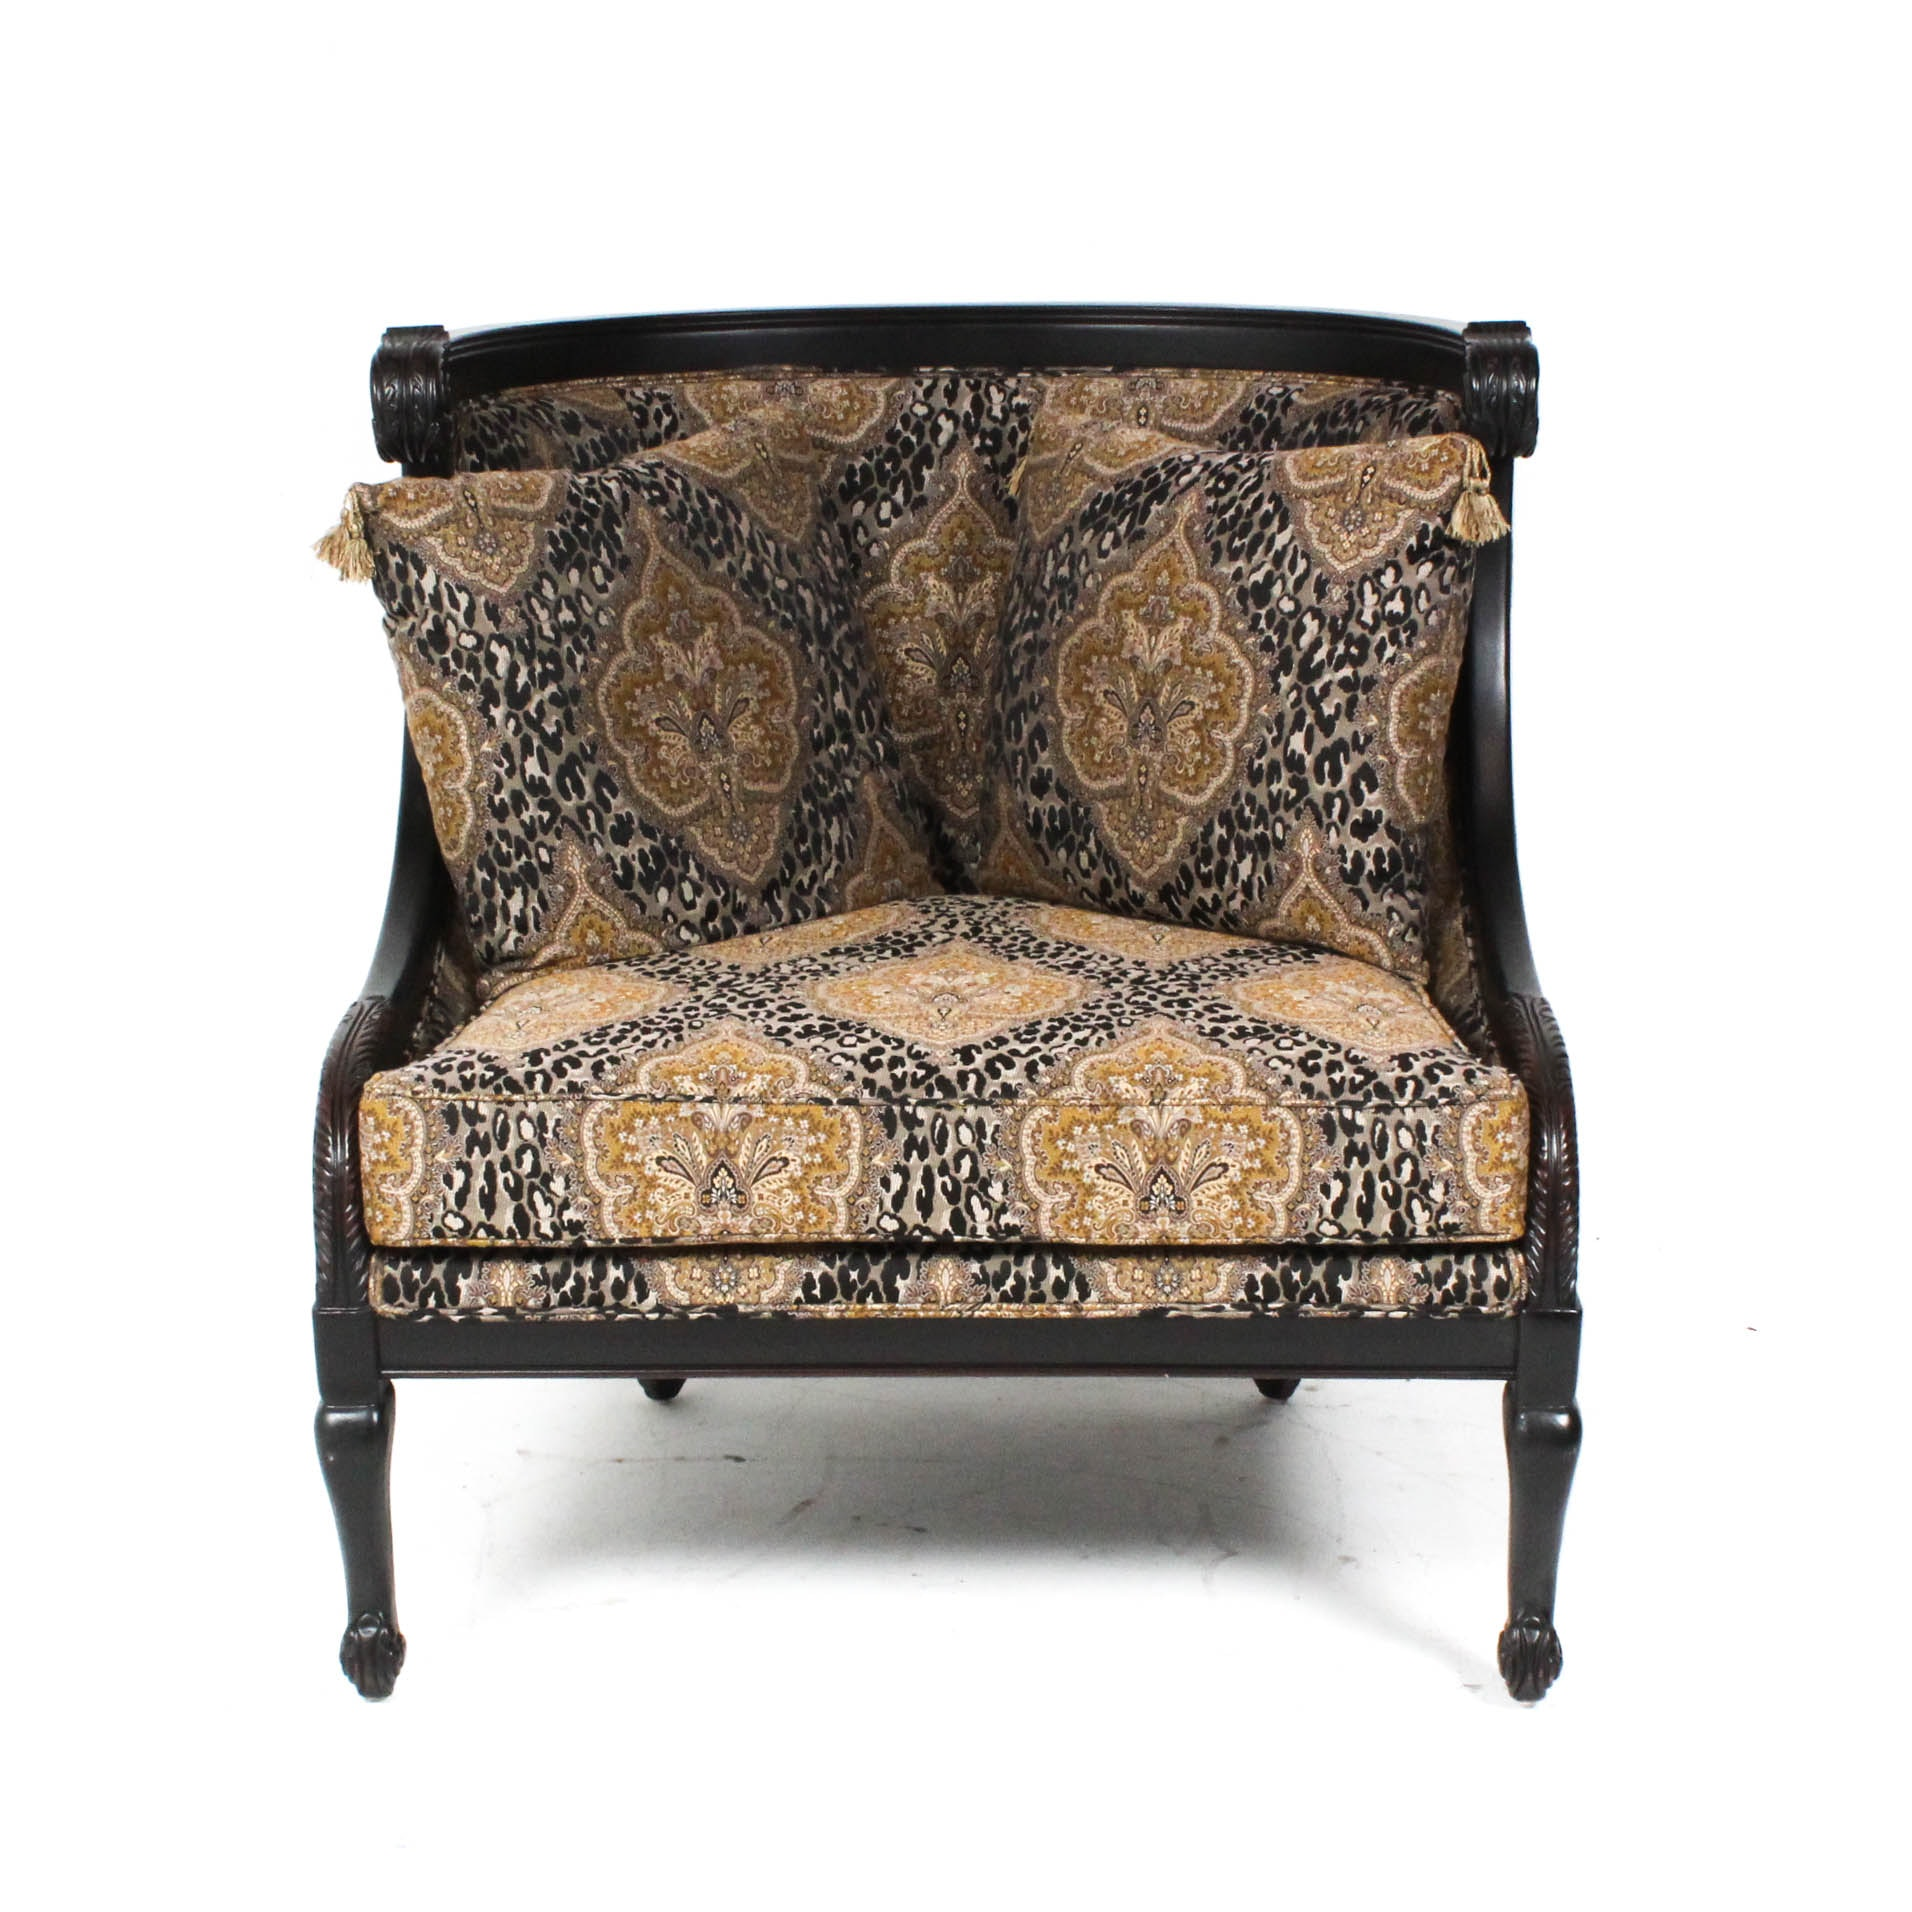 Custom Upholstered Oversize Chair